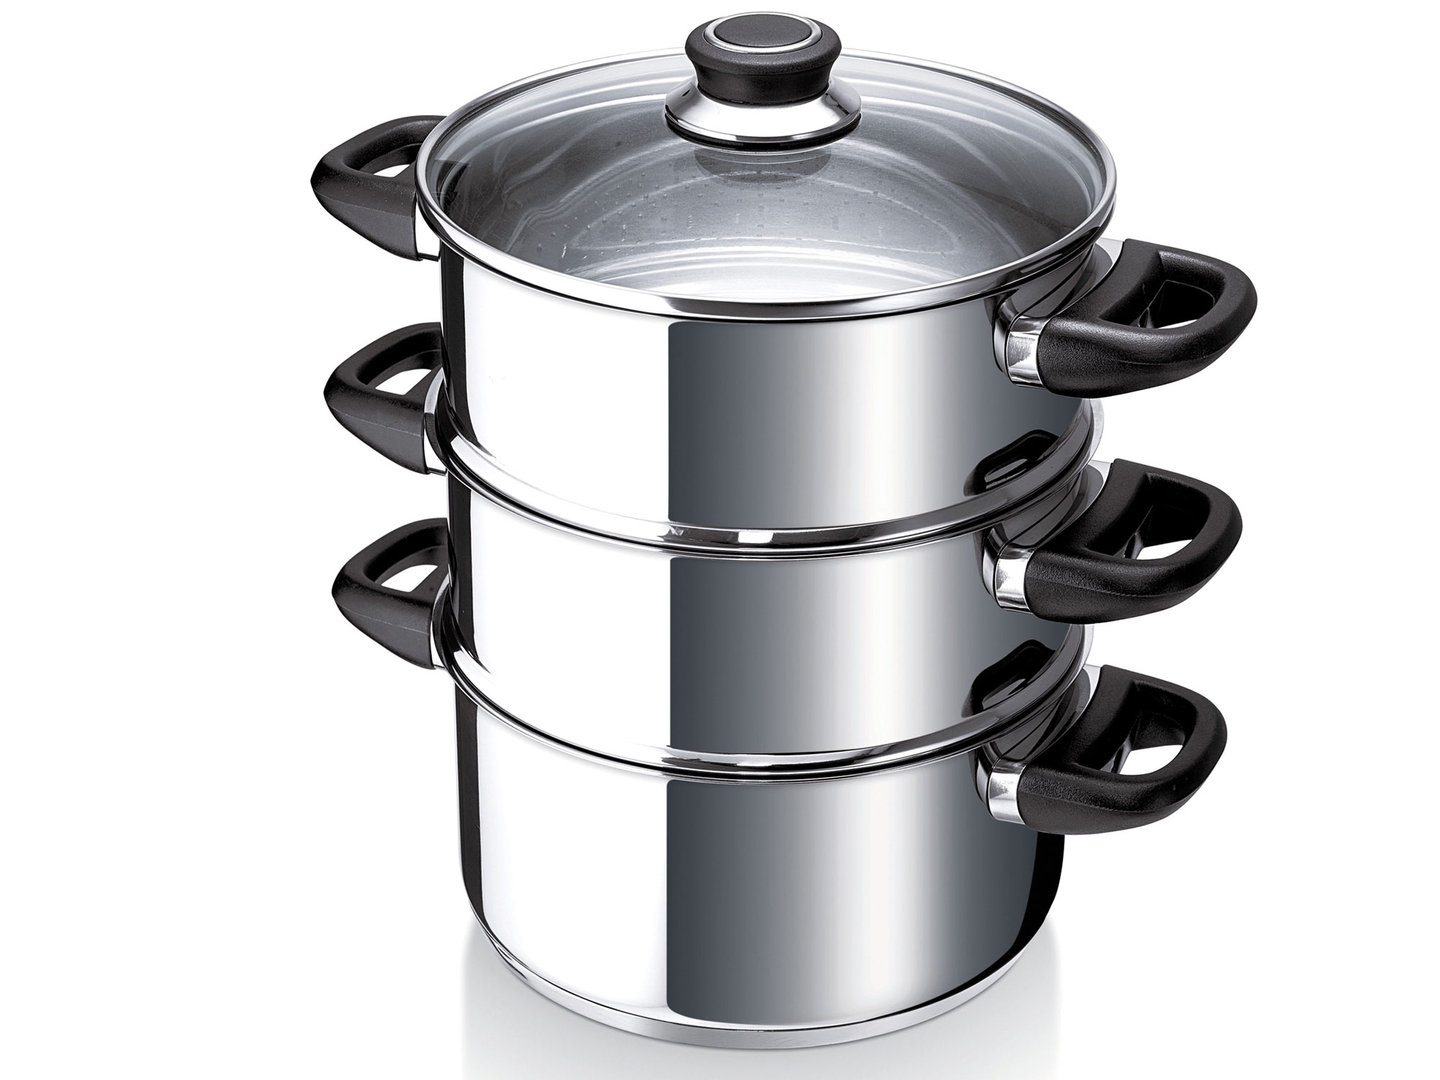 BEKA steamer POLO 24 cm stainless steel with 2 inserts